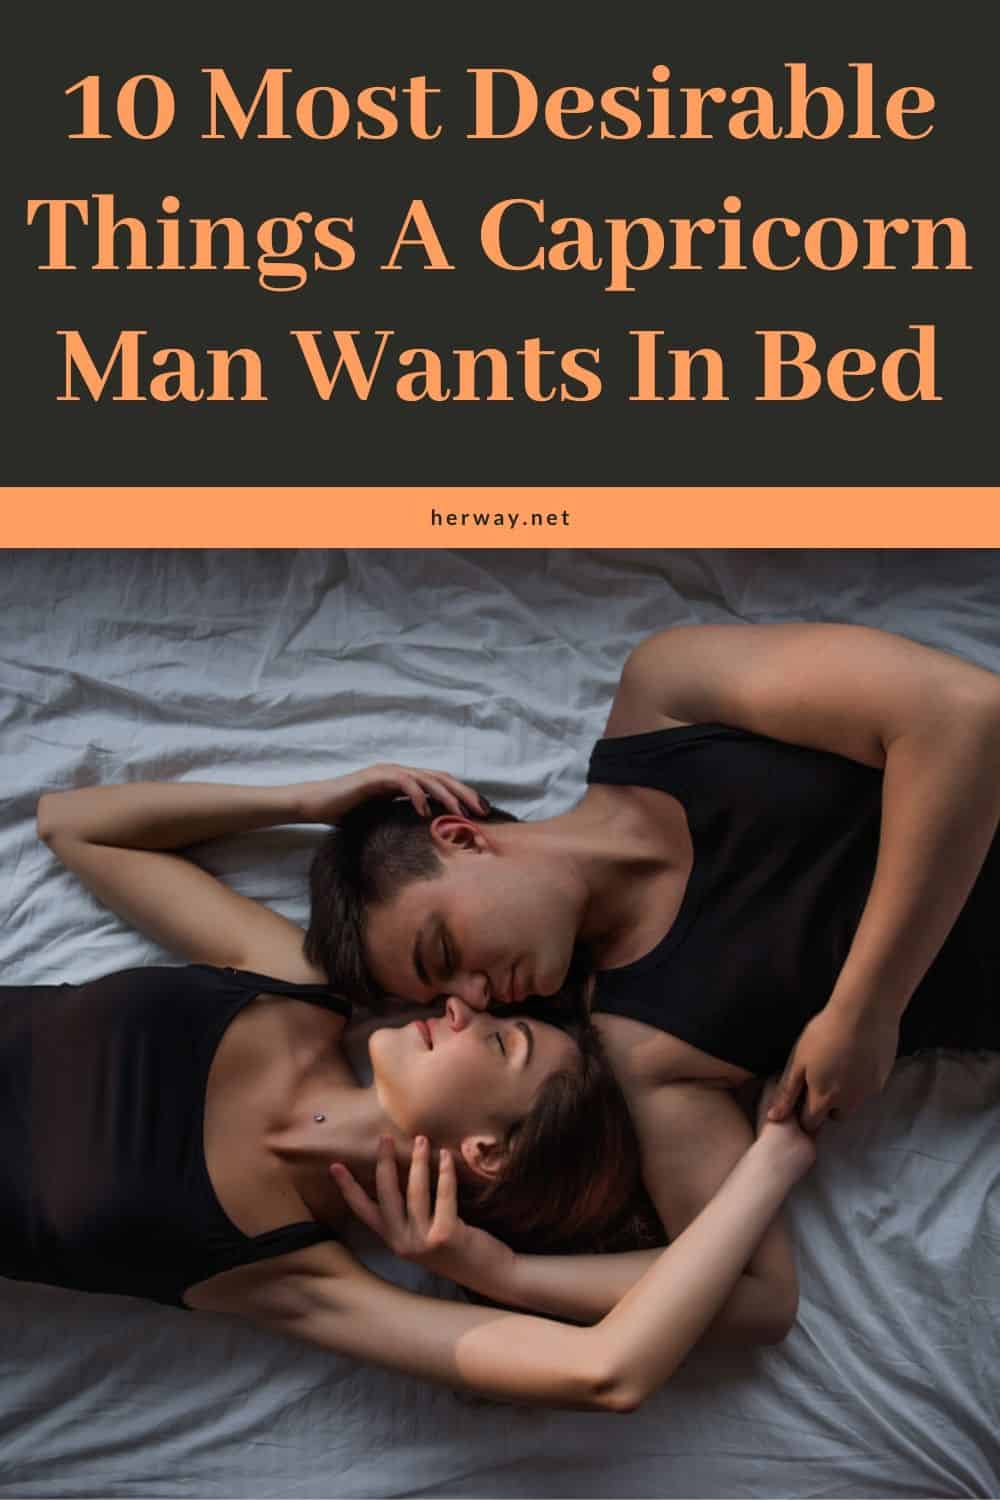 10 Most Desirable Things A Capricorn Man Wants In Bed